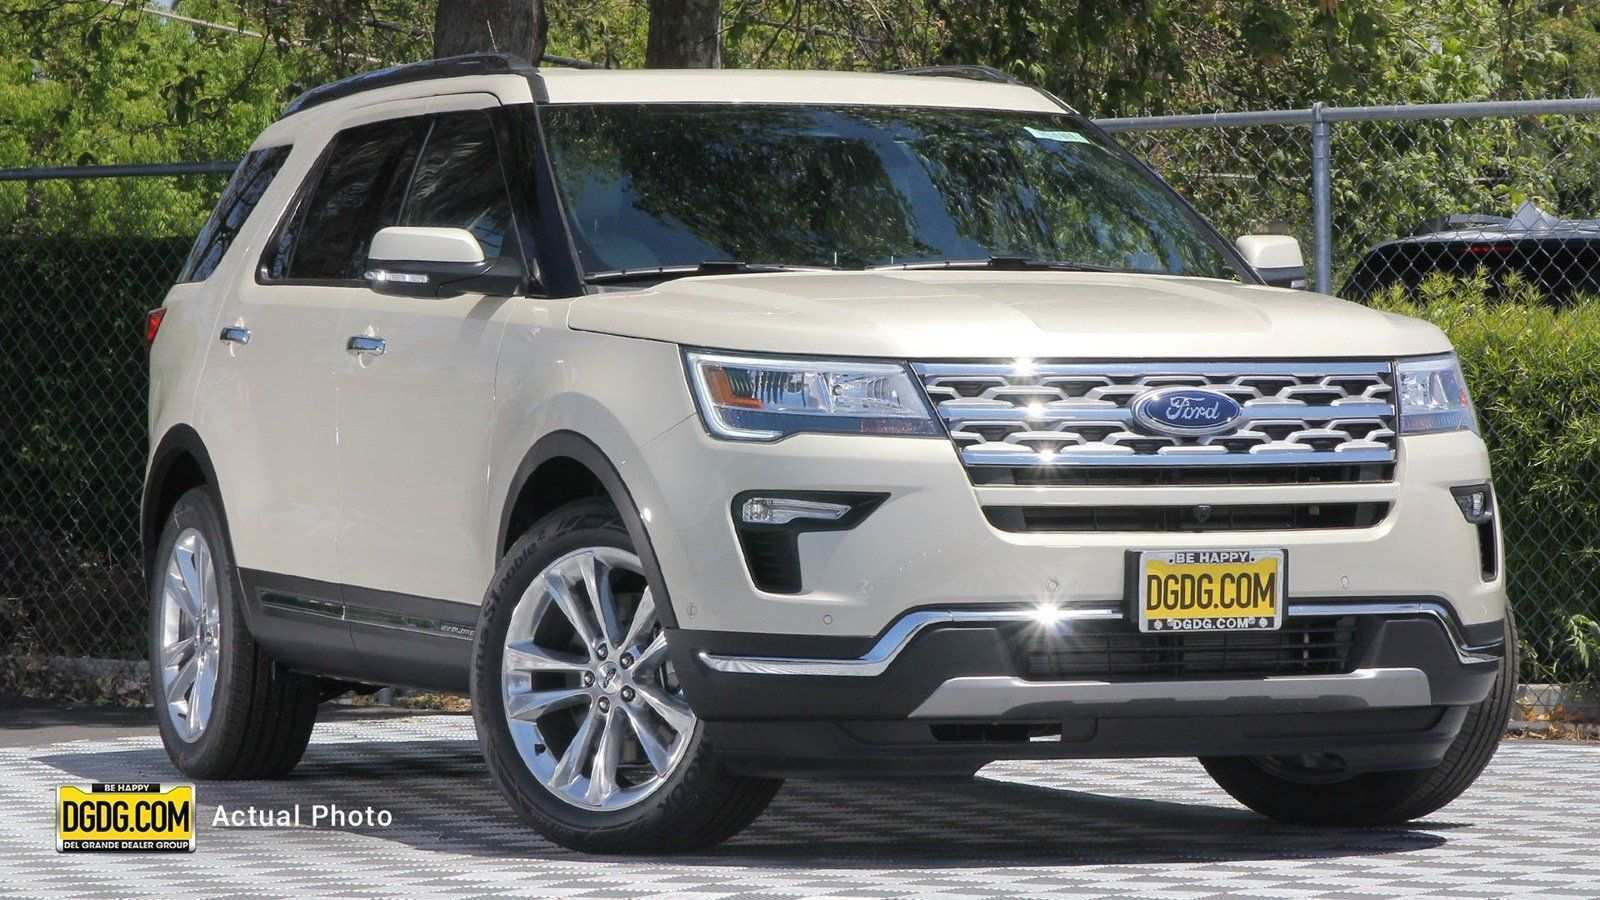 55 Gallery of 2020 Ford Explorer Linkedin Overview with 2020 Ford Explorer Linkedin